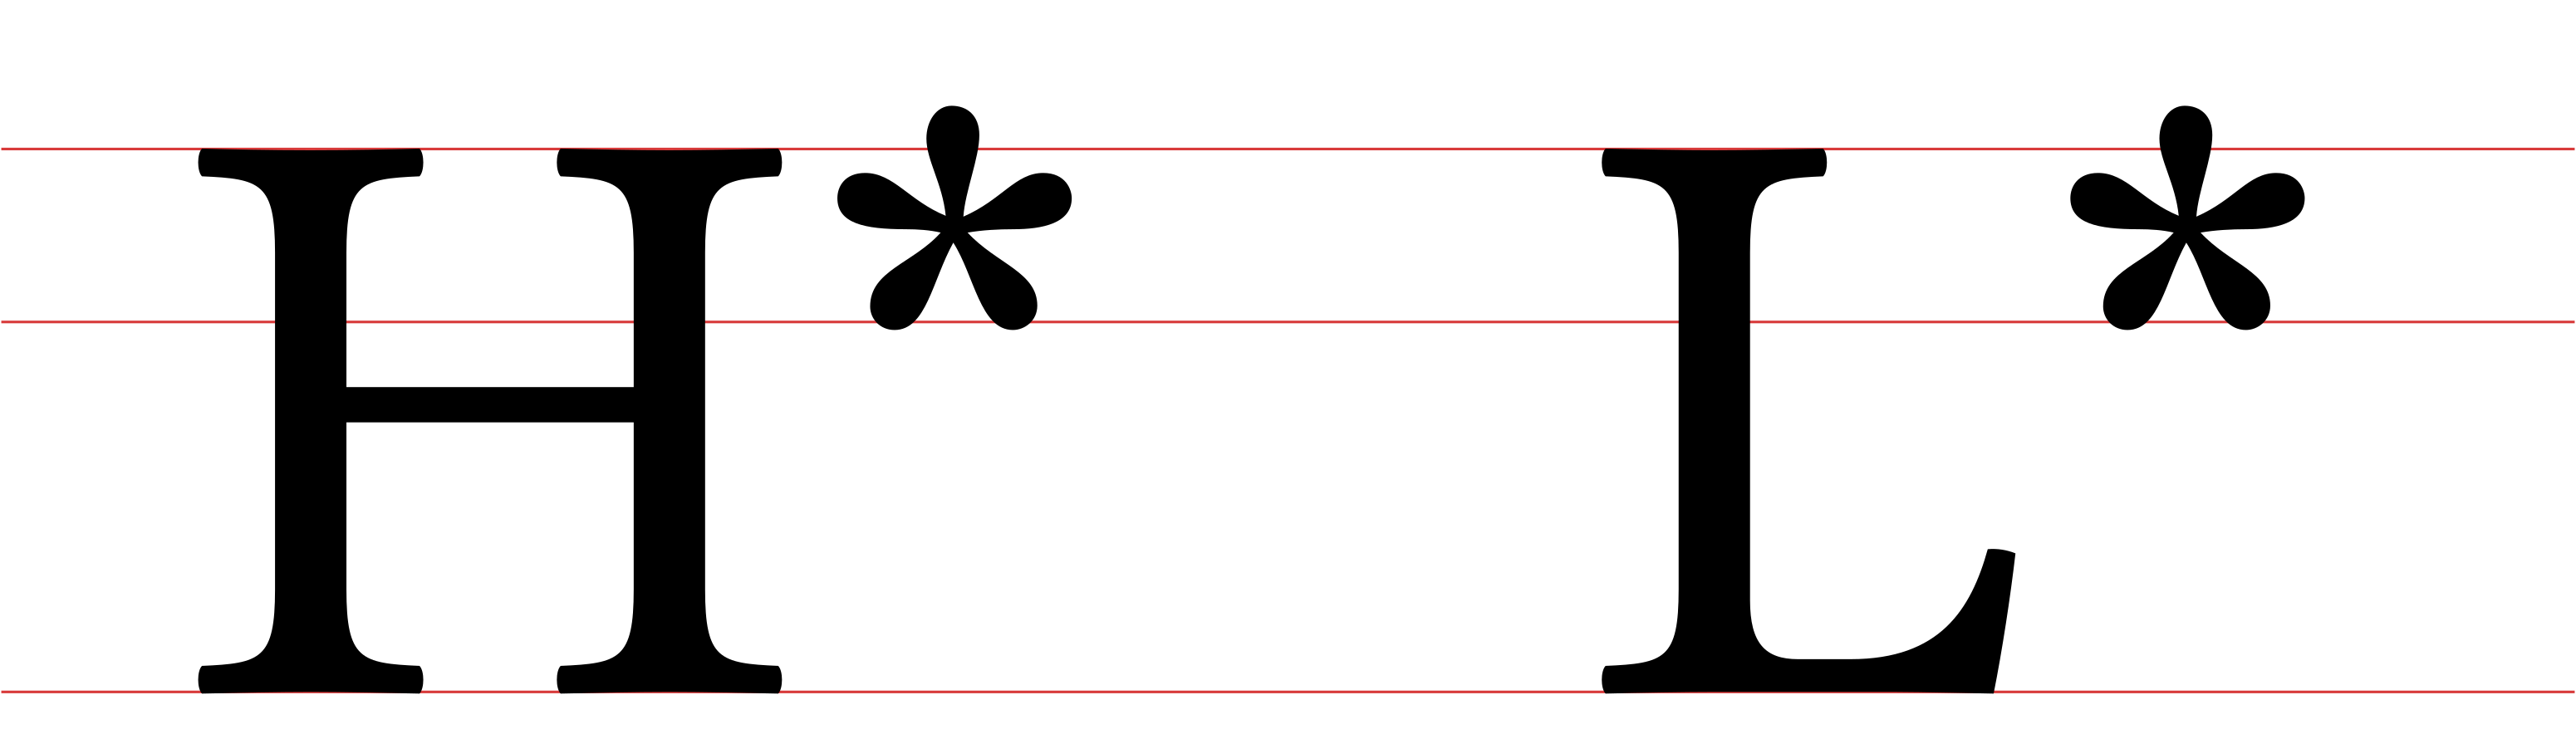 A sample of the basic tone markers in ToBI: a H* and a L* tones,  with red lines marking the baseline, the median, and the ascender height